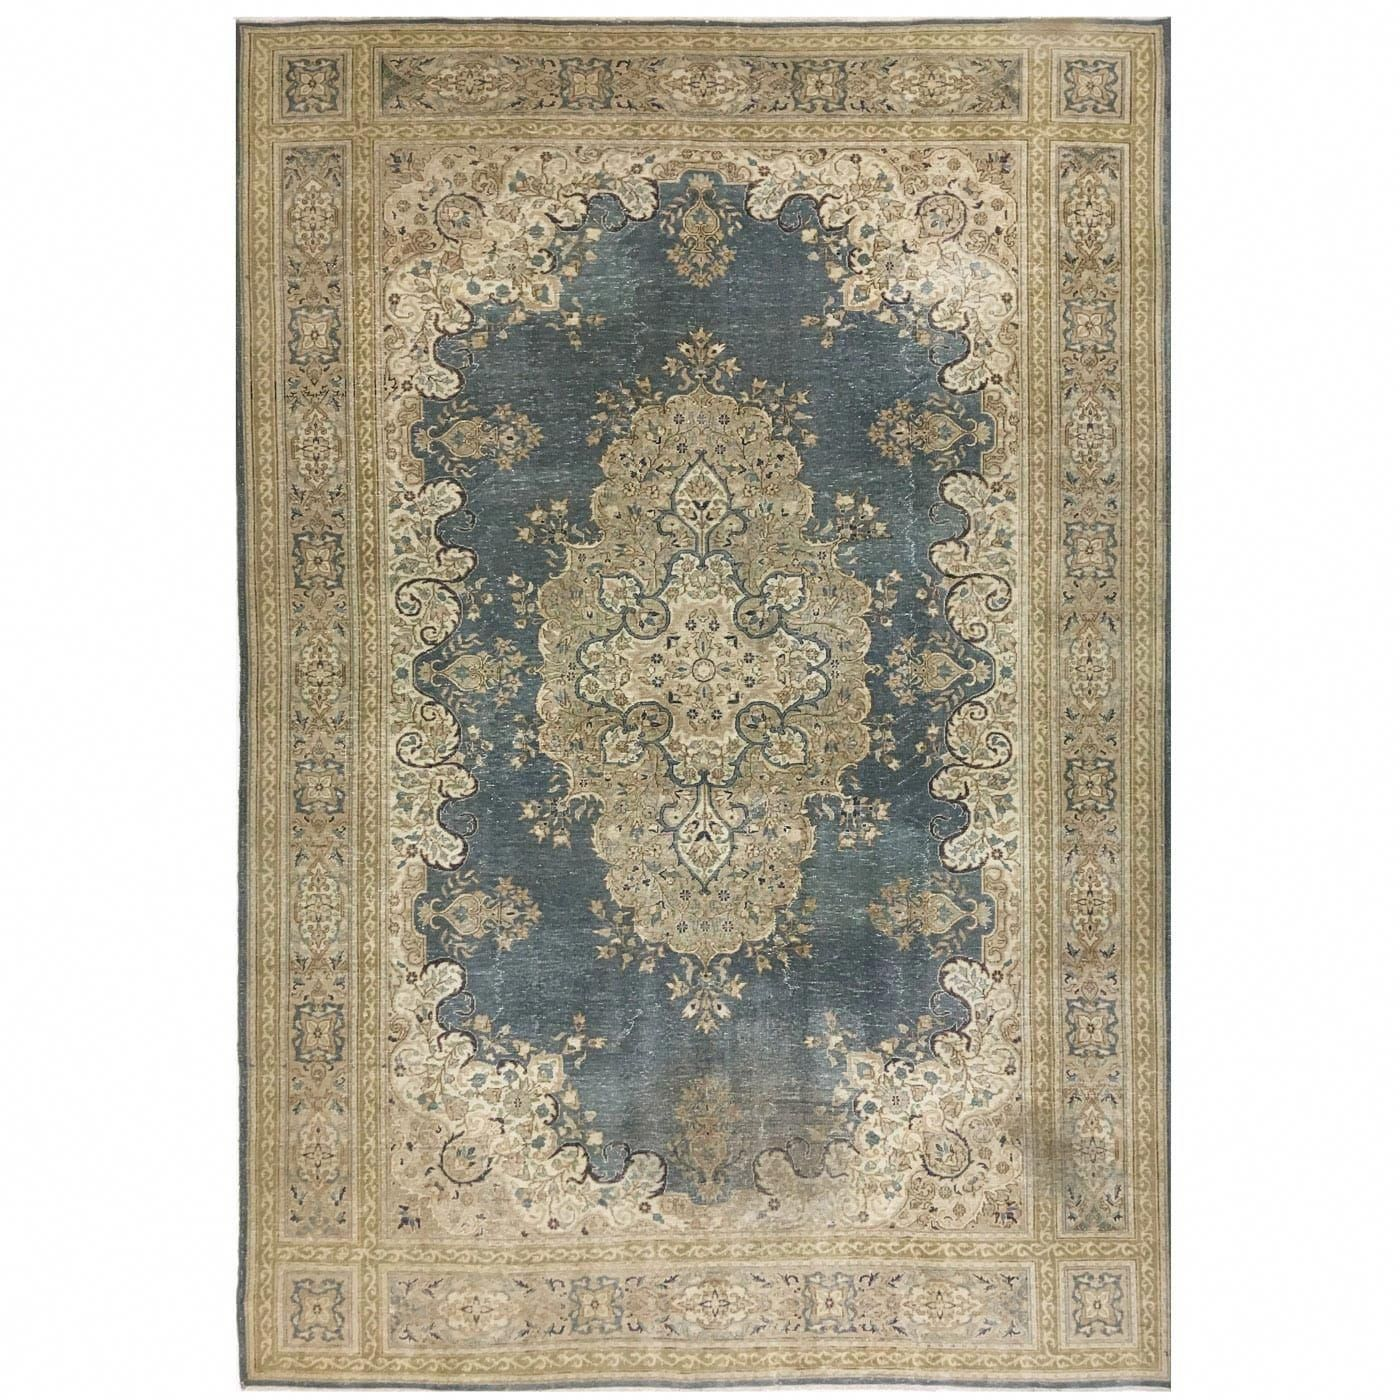 Rugs For Sale Online South Africa